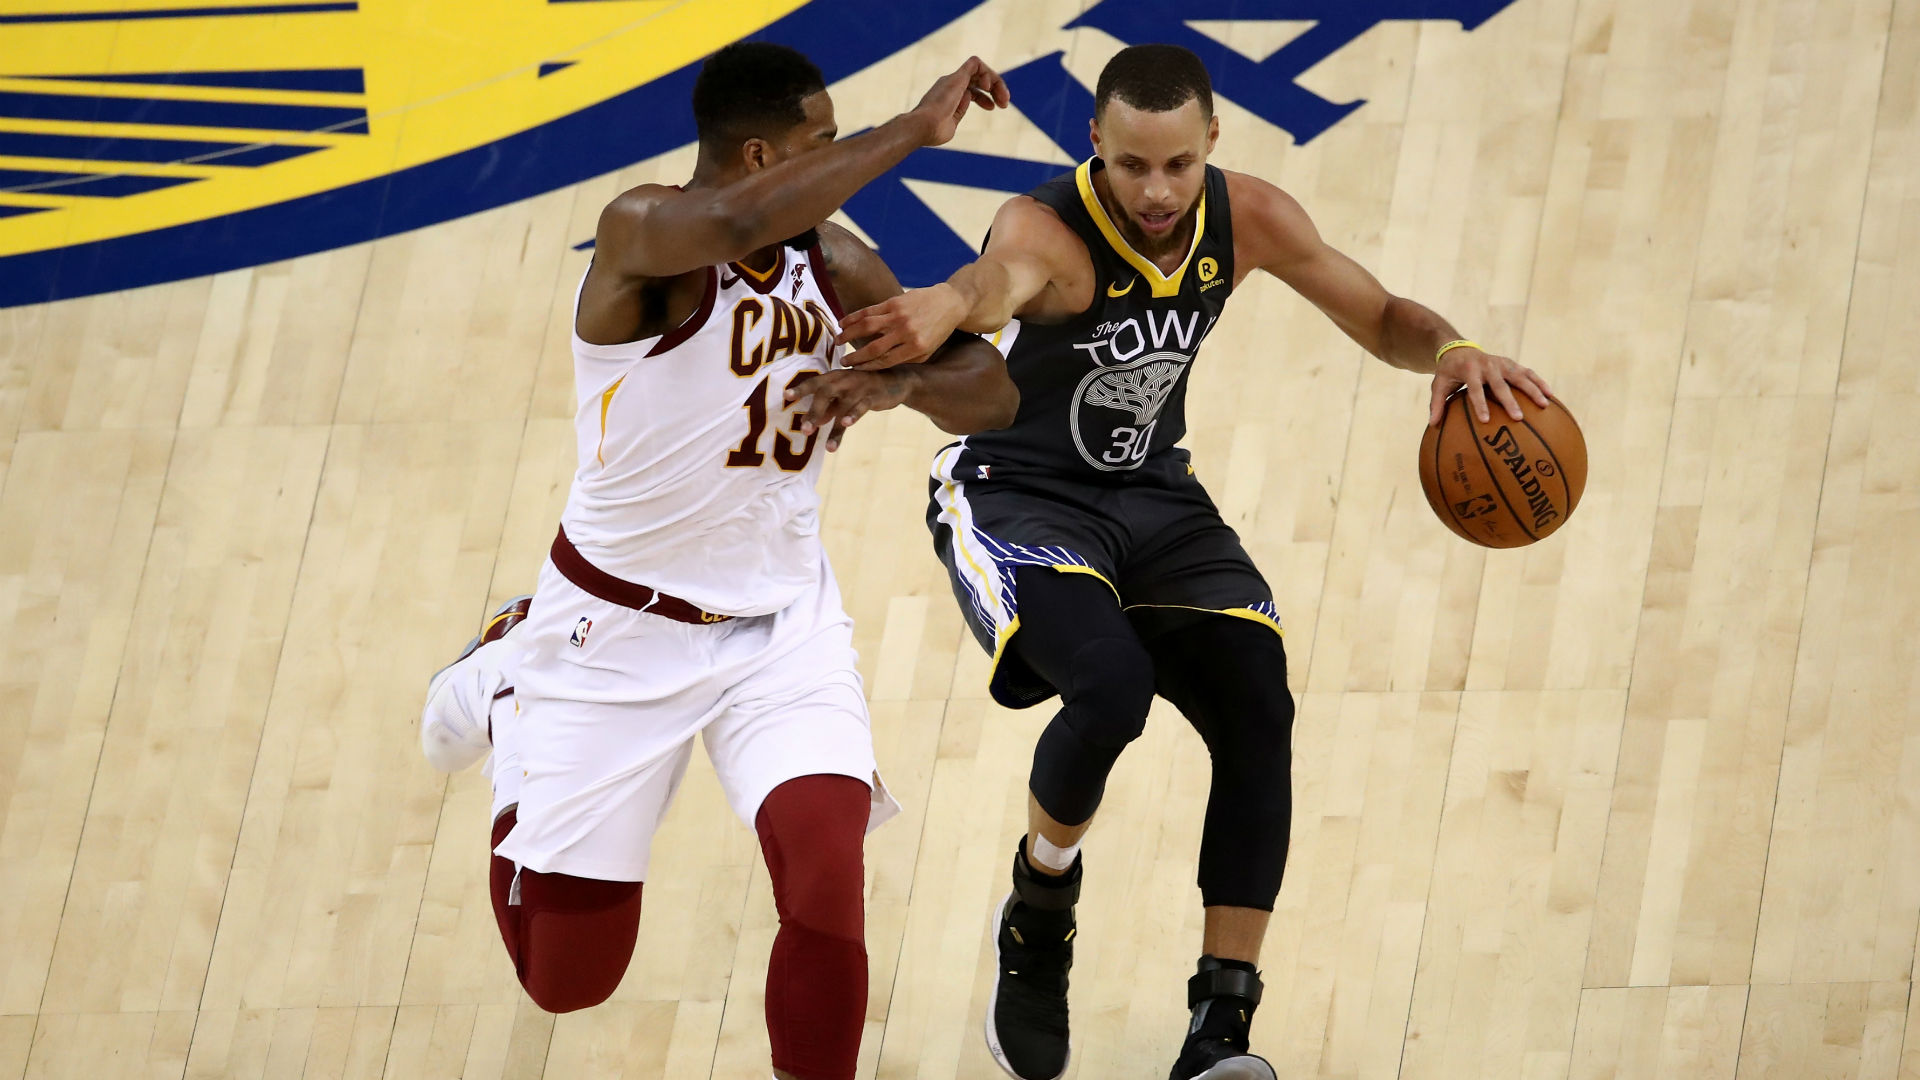 Tristan Thompson really didn't like this question about guarding Stephen Curry